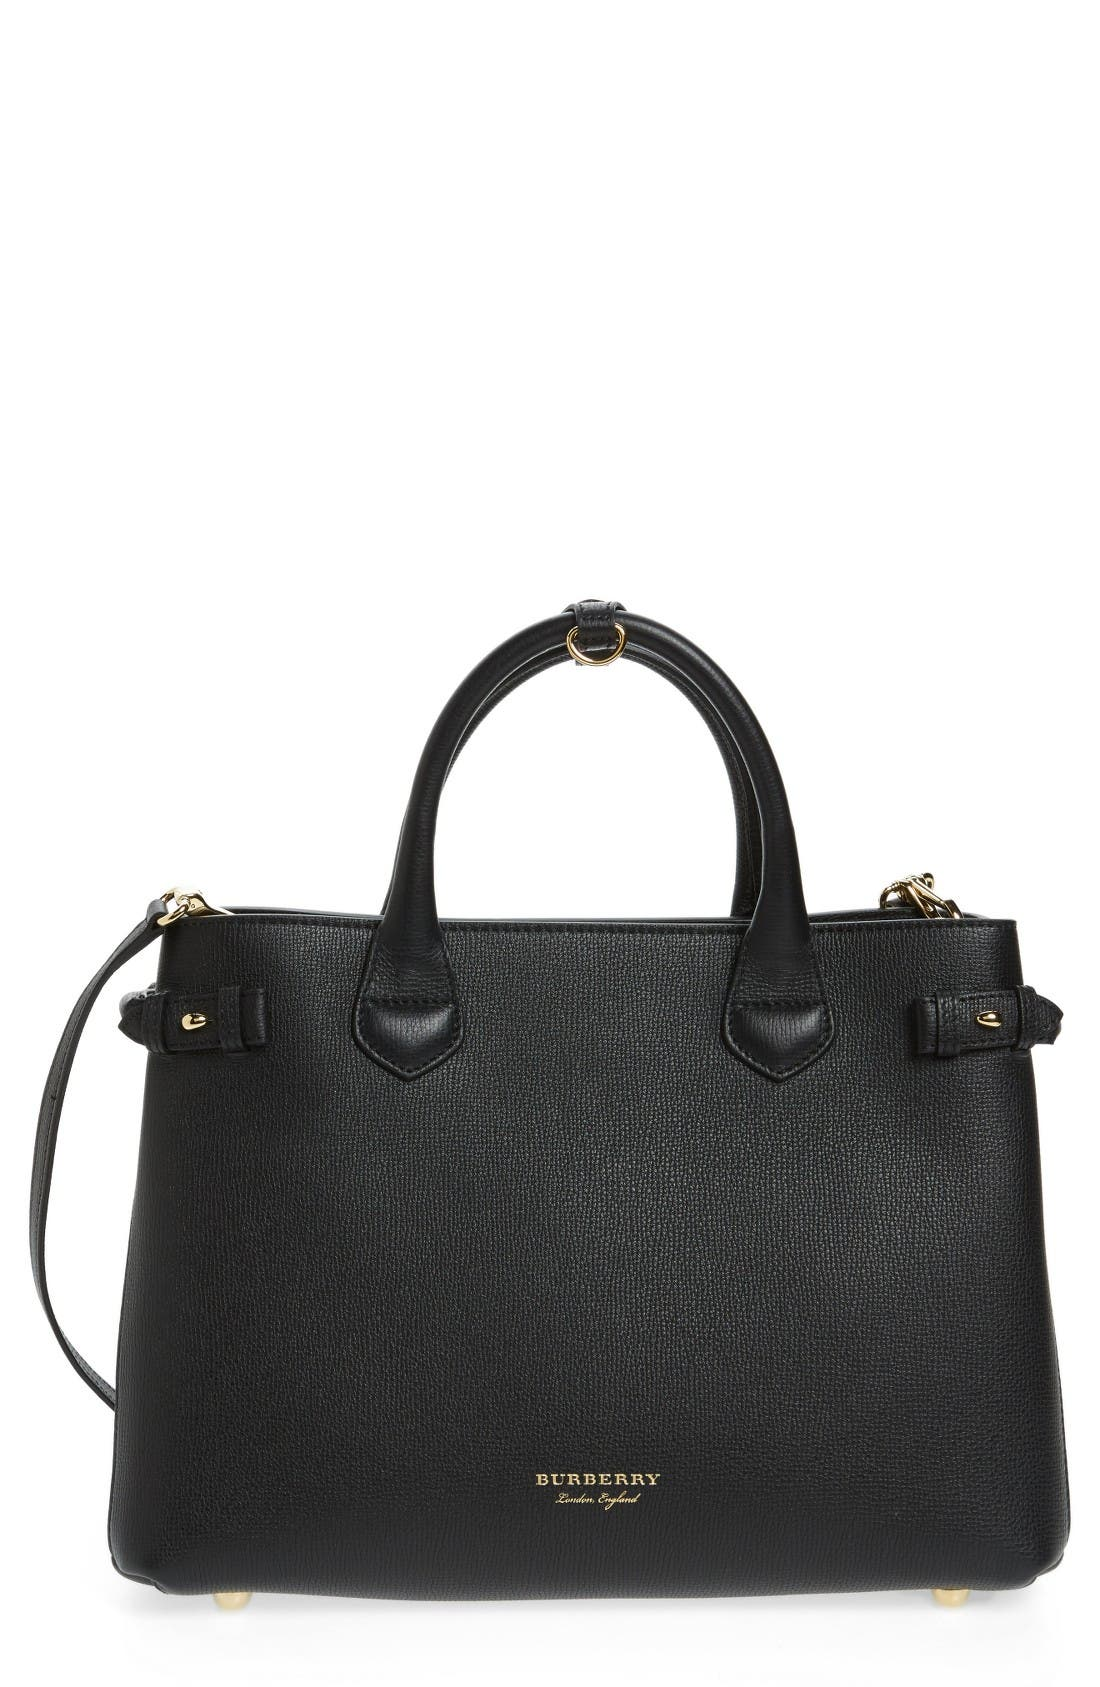 Alternate Image 1 Selected - Burberry Medium Banner House Check Leather Tote